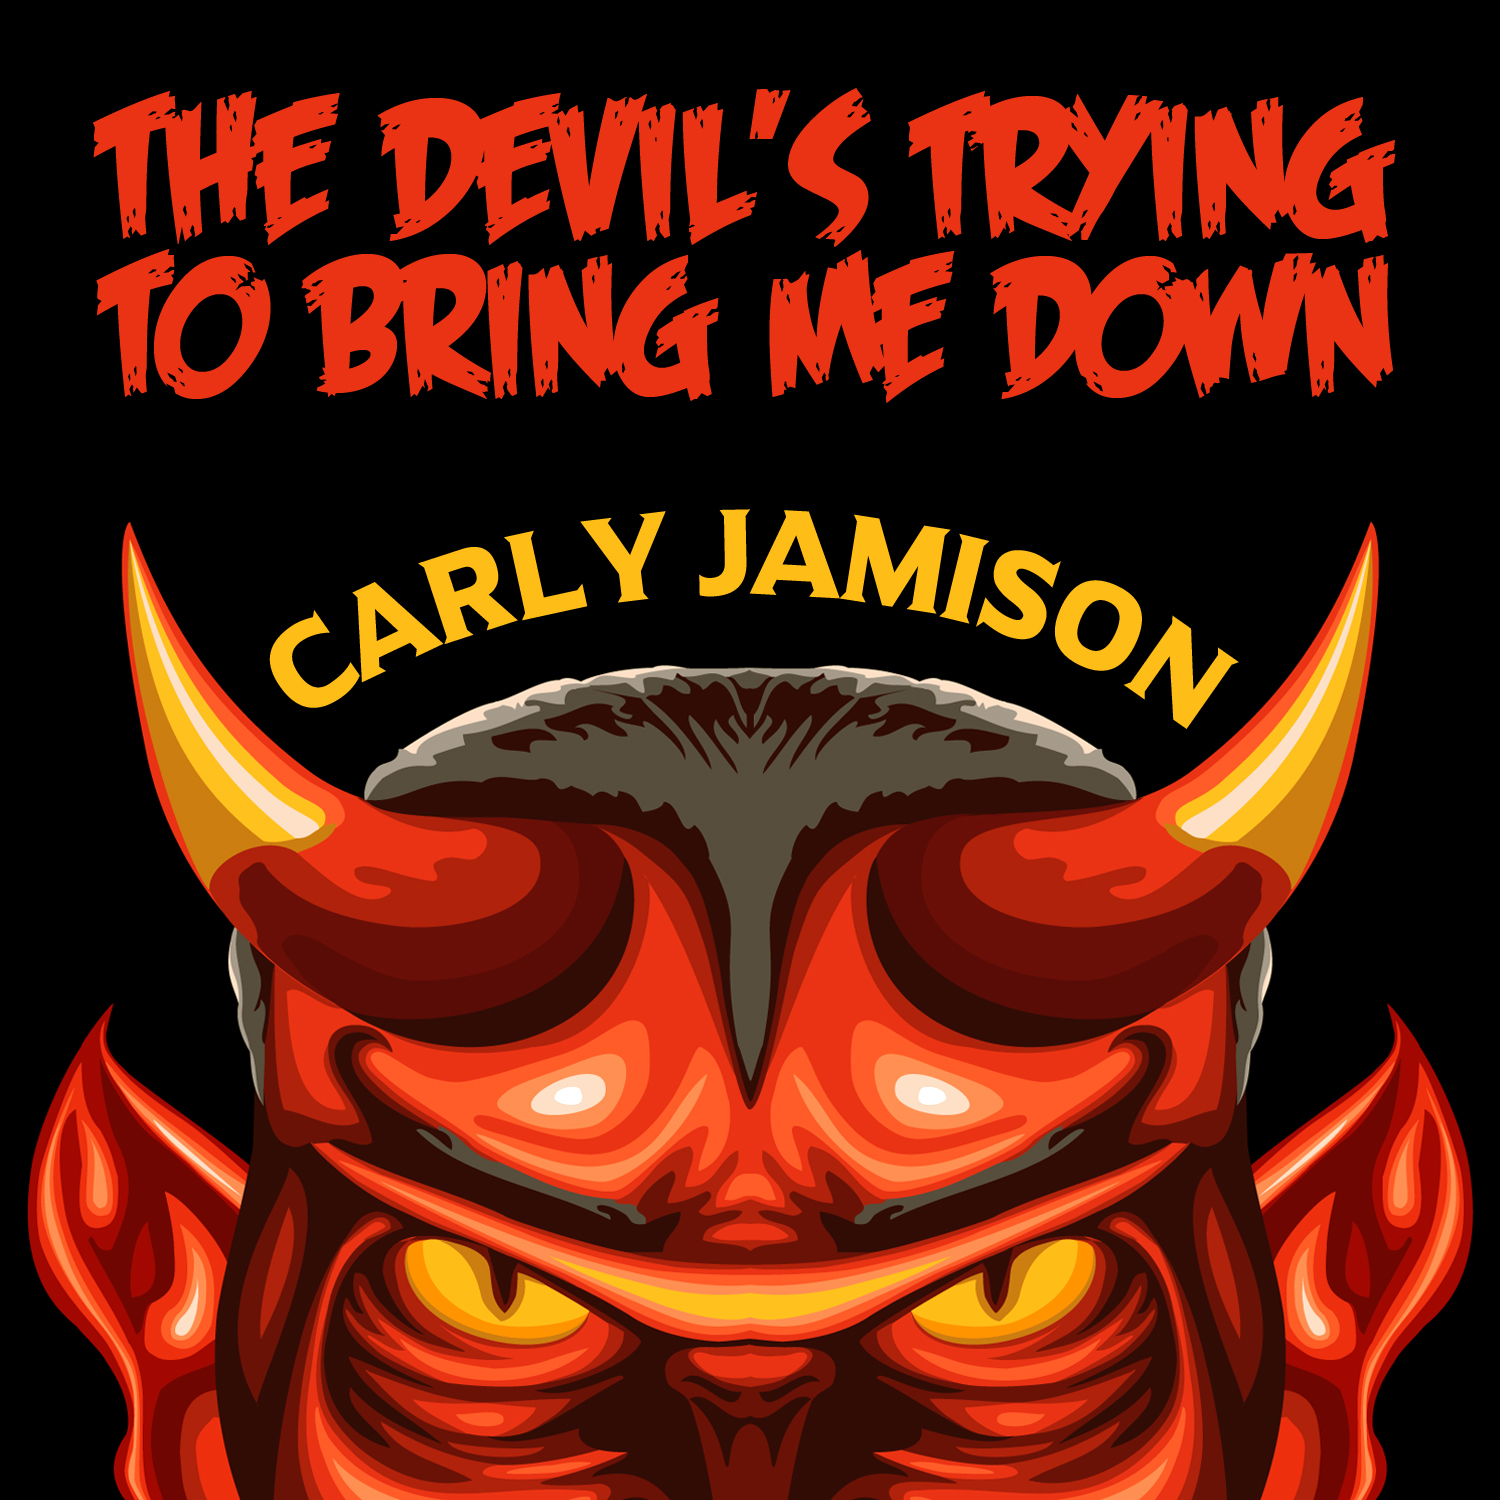 Carly Jamison - The Devil's Trying To Bring Me Down